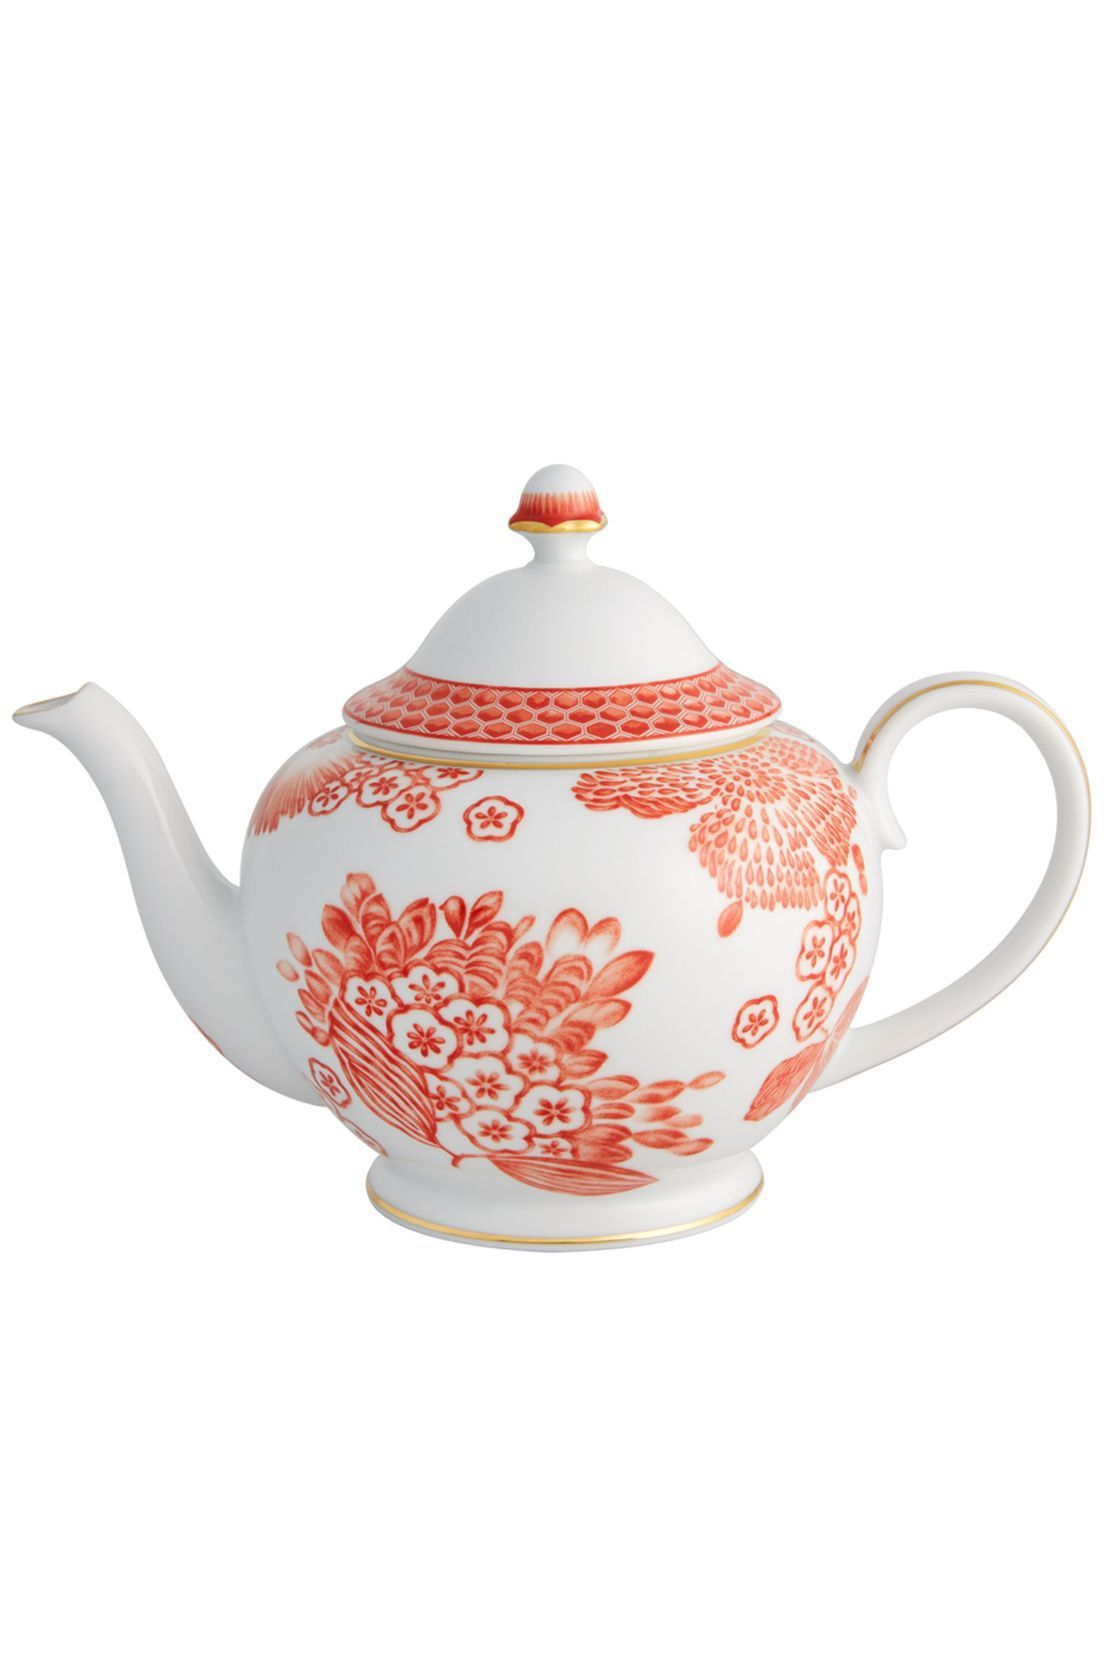 Oscar De La Renta by Vista Alegre Porcelain Tea Pot